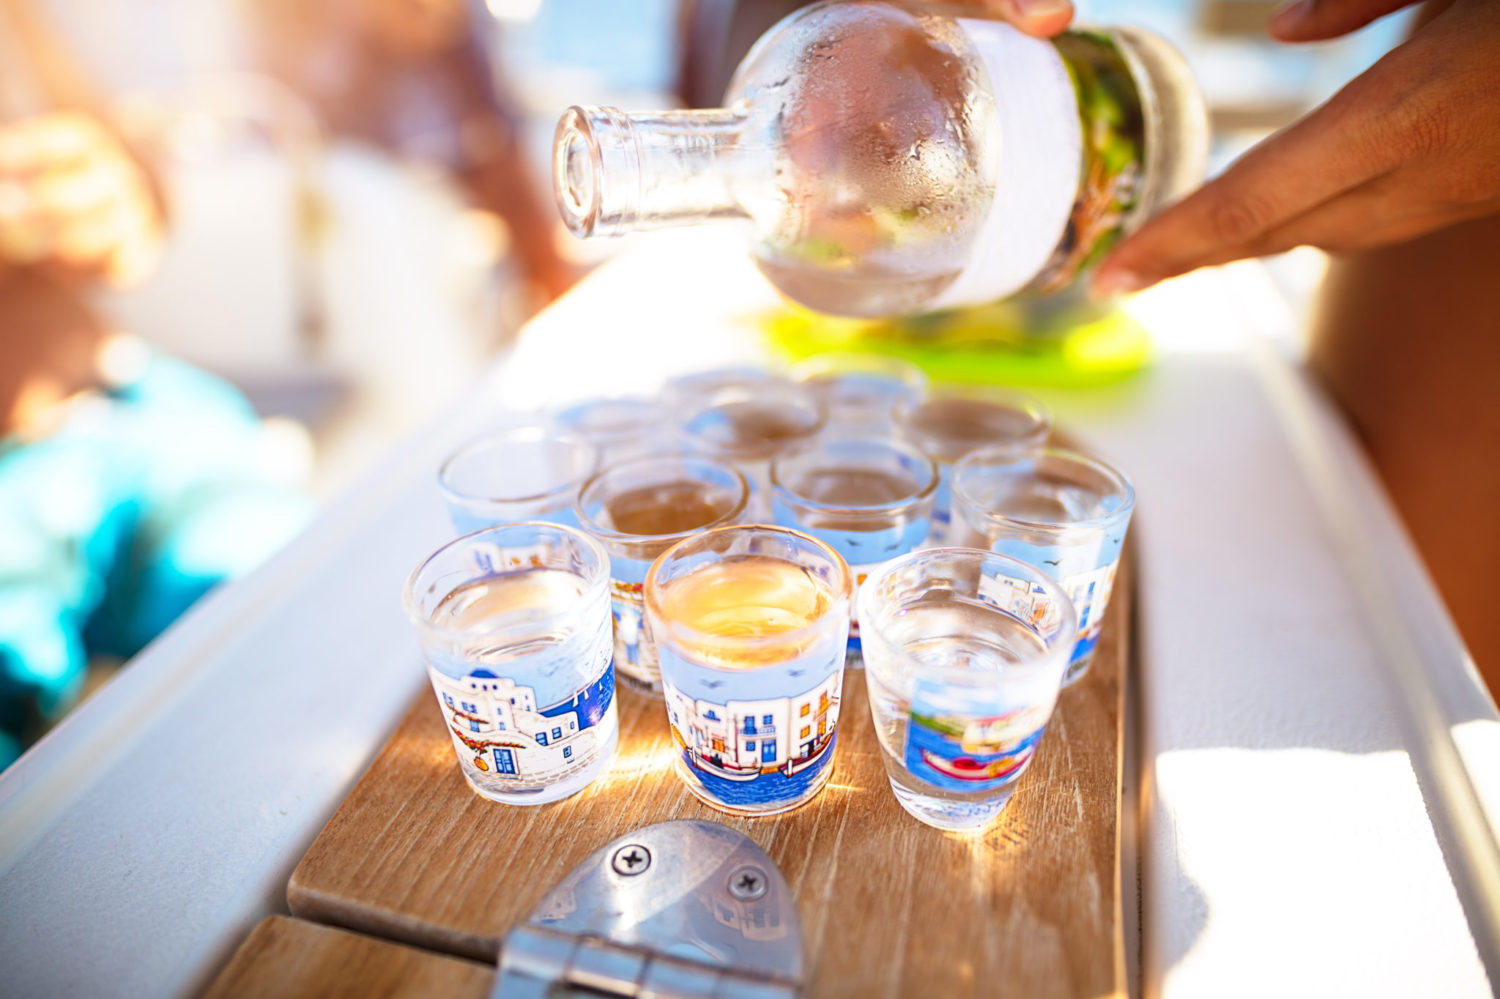 How long does vodka last? Can it go bad?